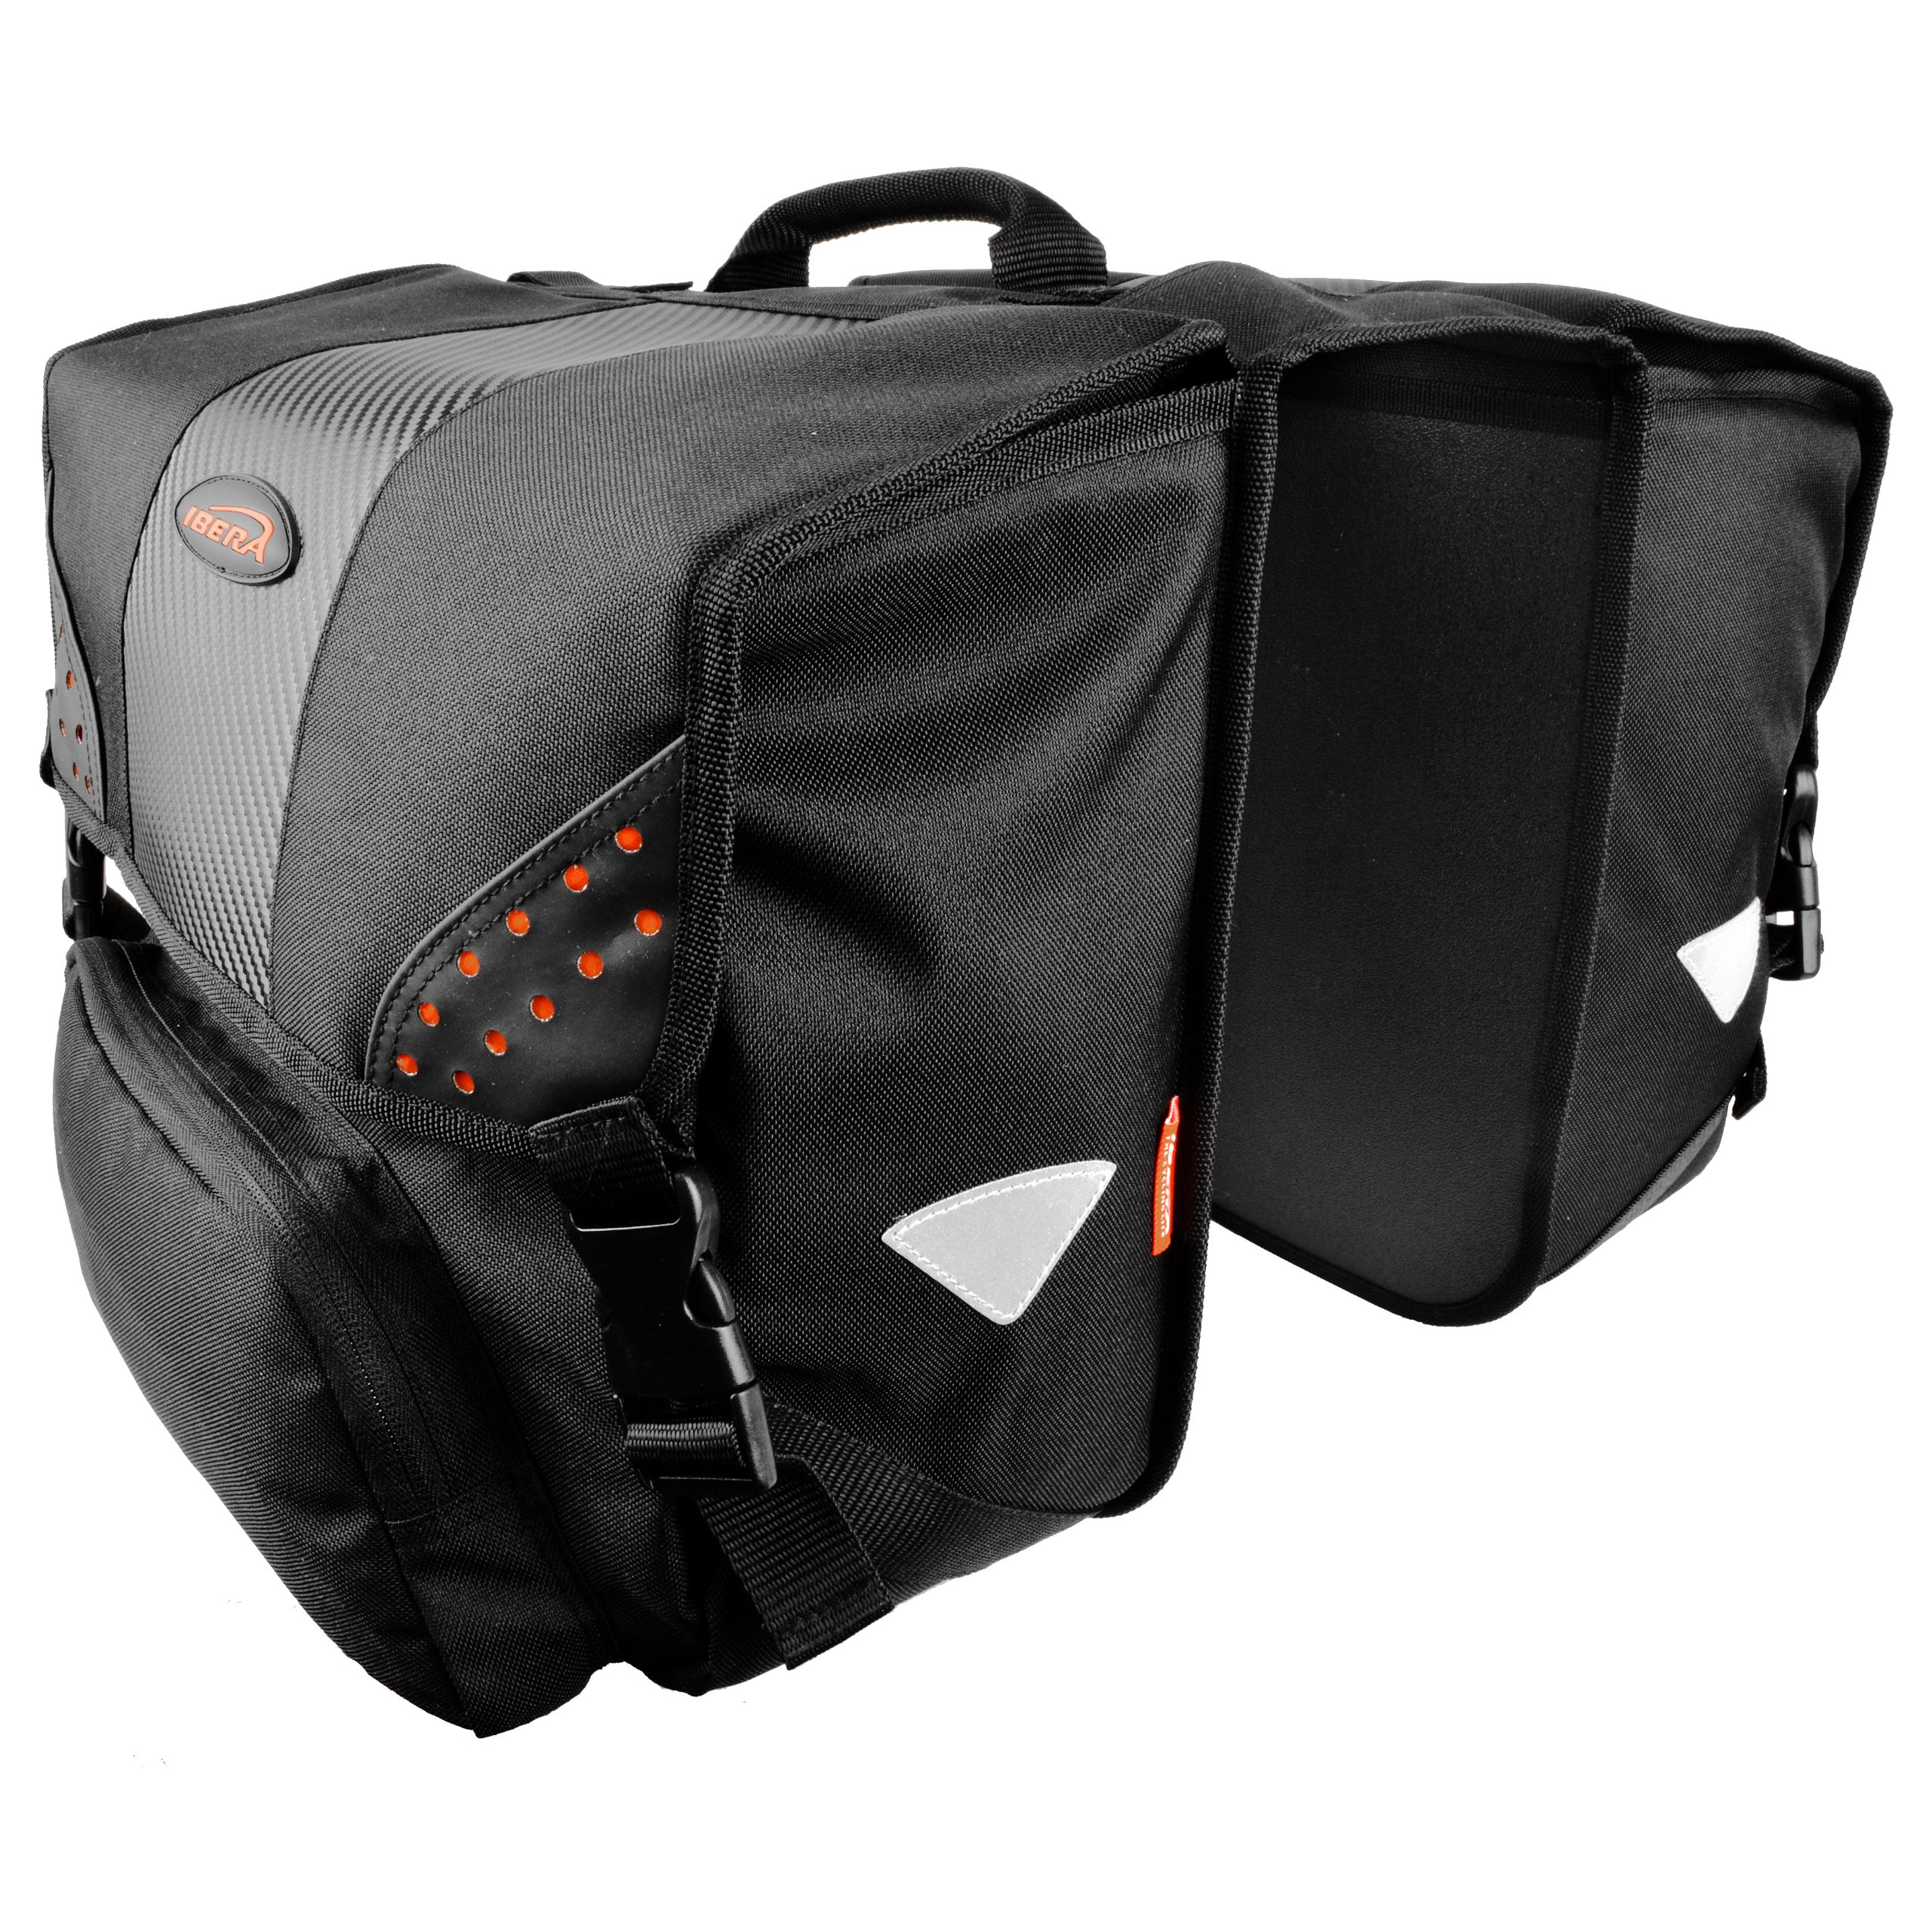 Ibera Bicycle Side-Mounting Pannier Set, Bike Panniers with Multi-Compartments, Slit on Top to Mount on Smaller Racks  by Ibera (Image #2)